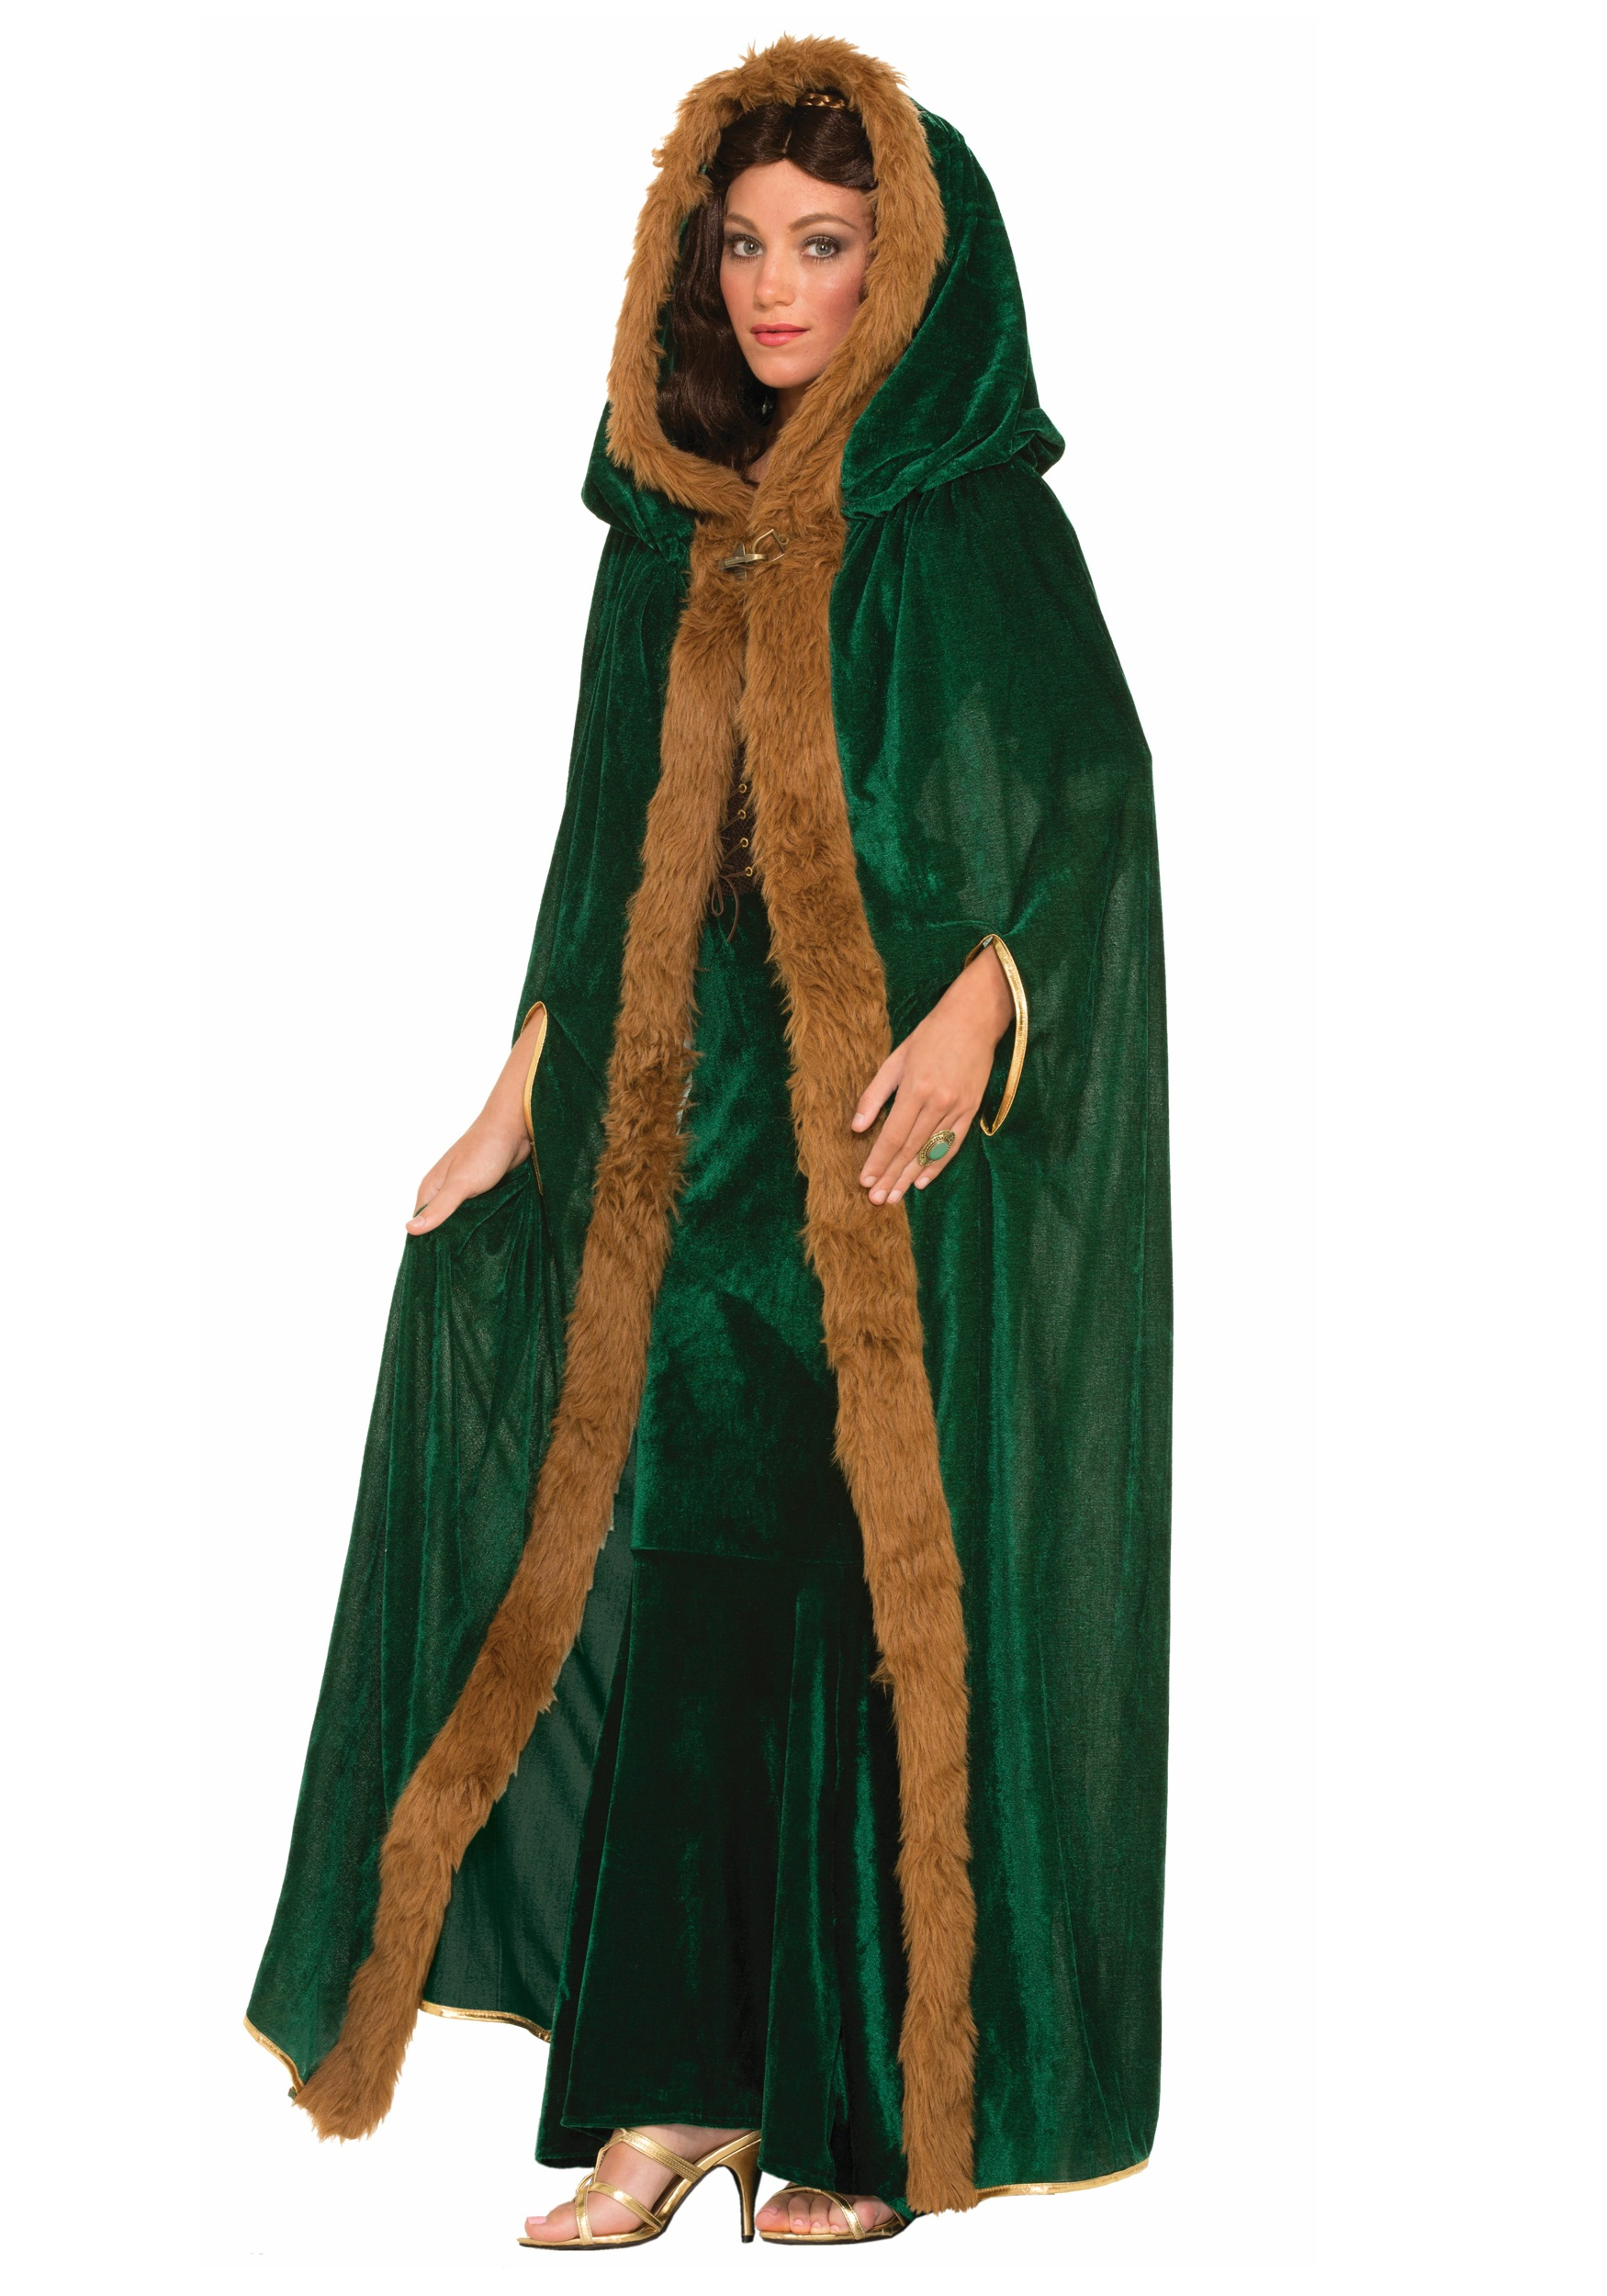 FAUX FUR TRIMMED GREEN CAPE cloak